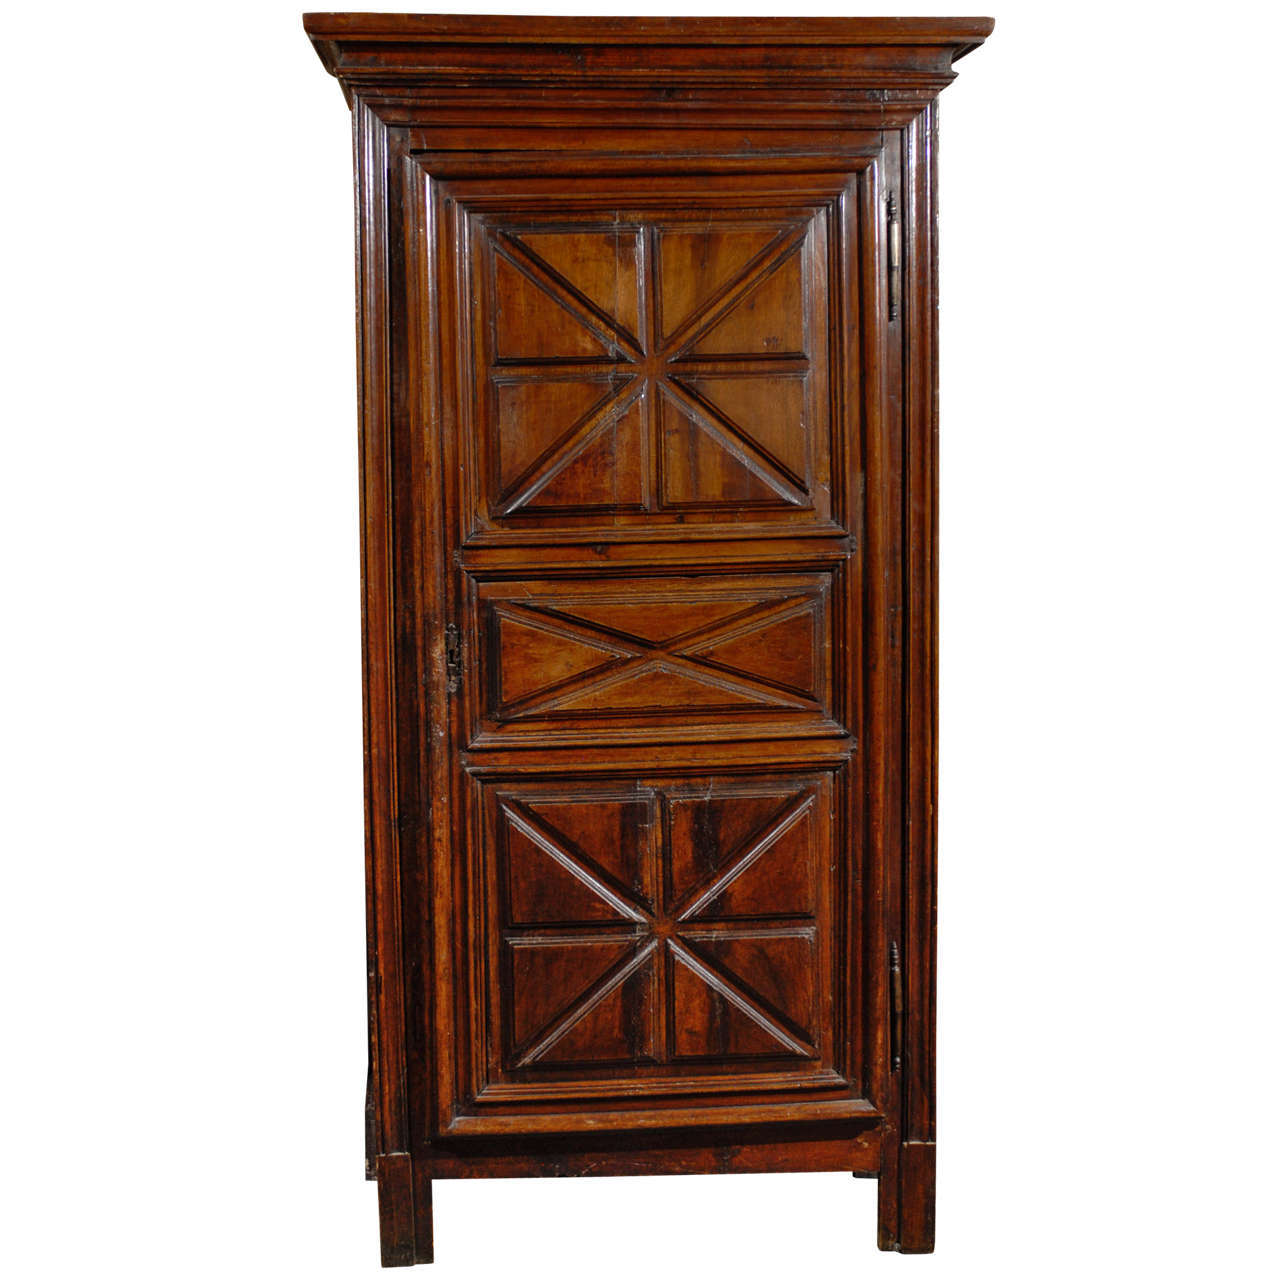 18th century french bonneti re armoire with geometric patterns on single door for sale at 1stdibs. Black Bedroom Furniture Sets. Home Design Ideas